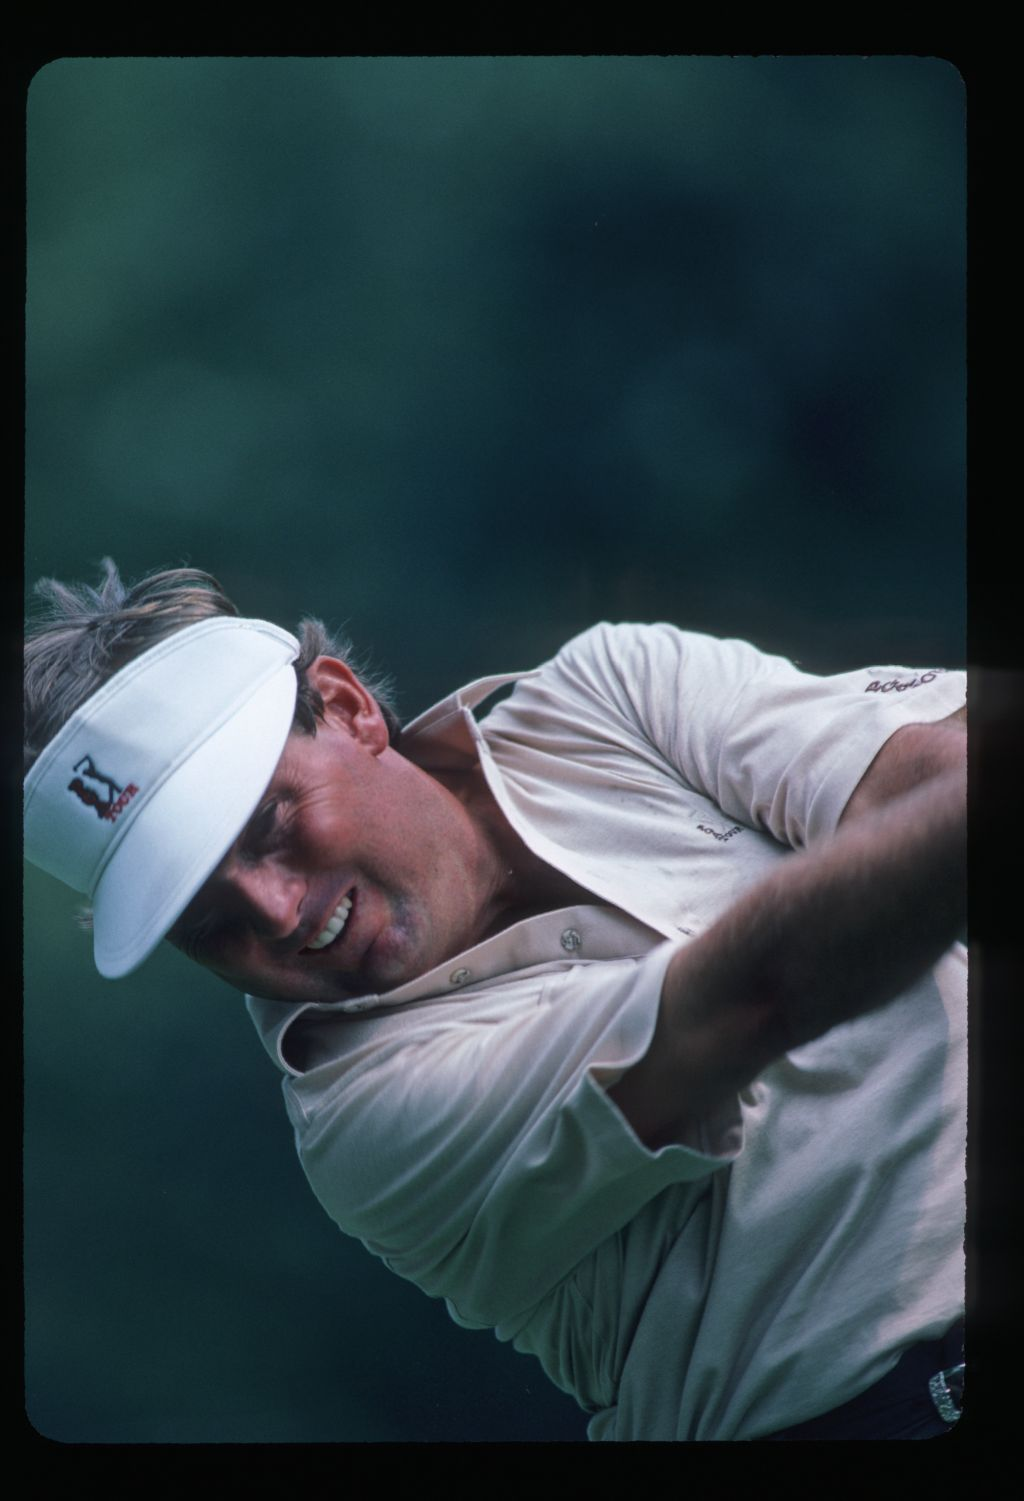 Lanny Wadkins plays his way to a 2nd place finish at the 1986 NEC World Series of Golf at Firestone